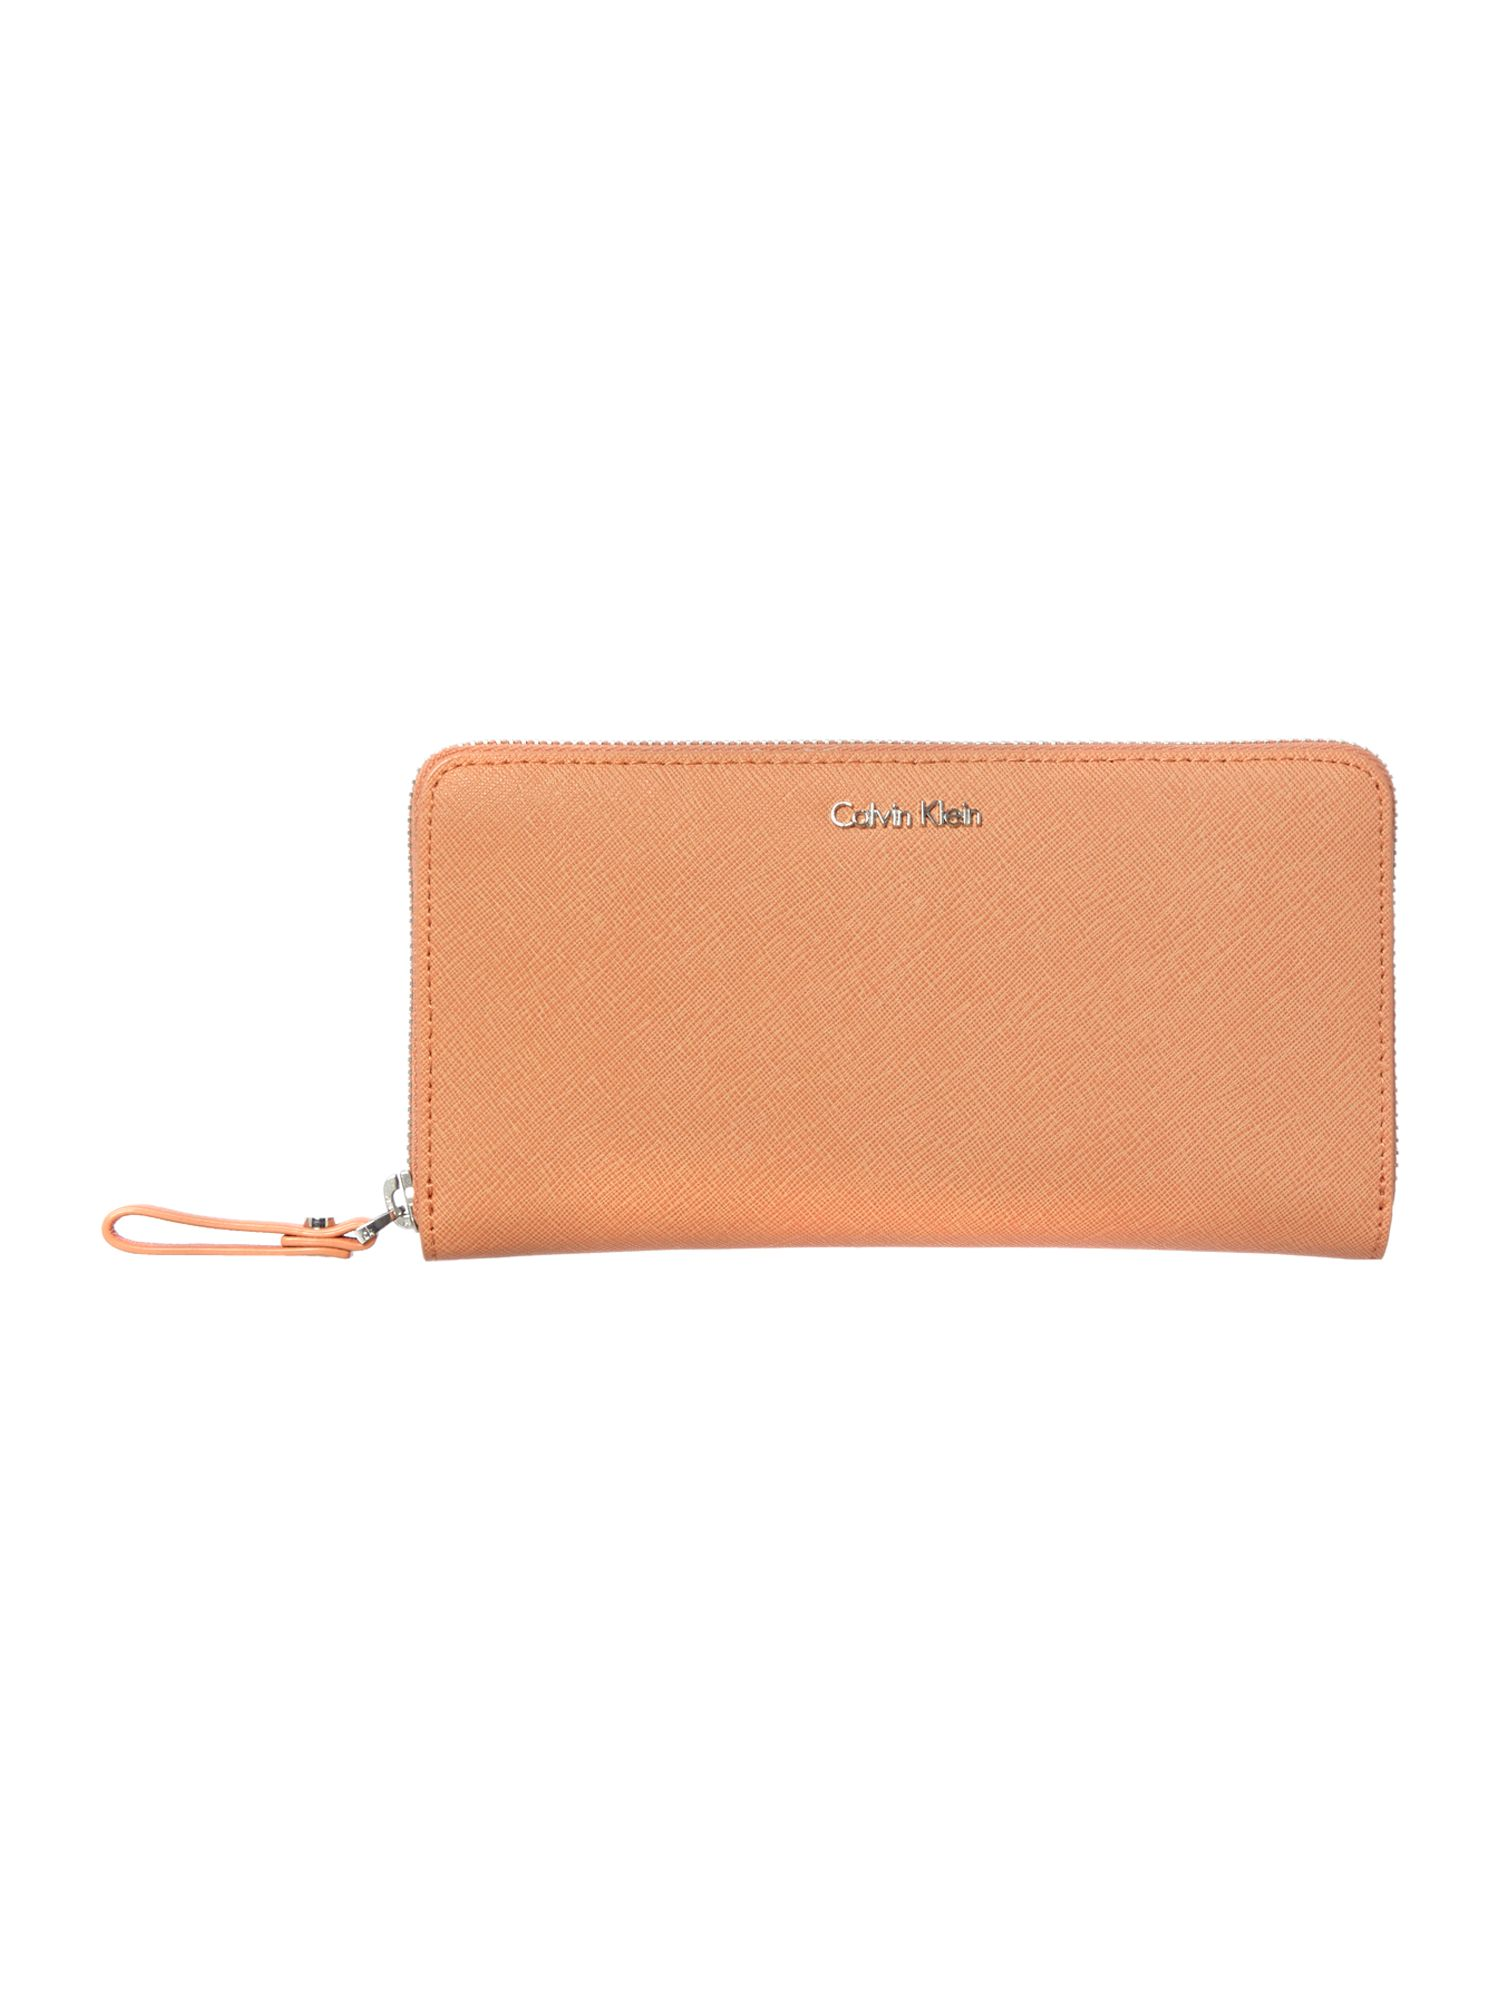 Coral zip around purse